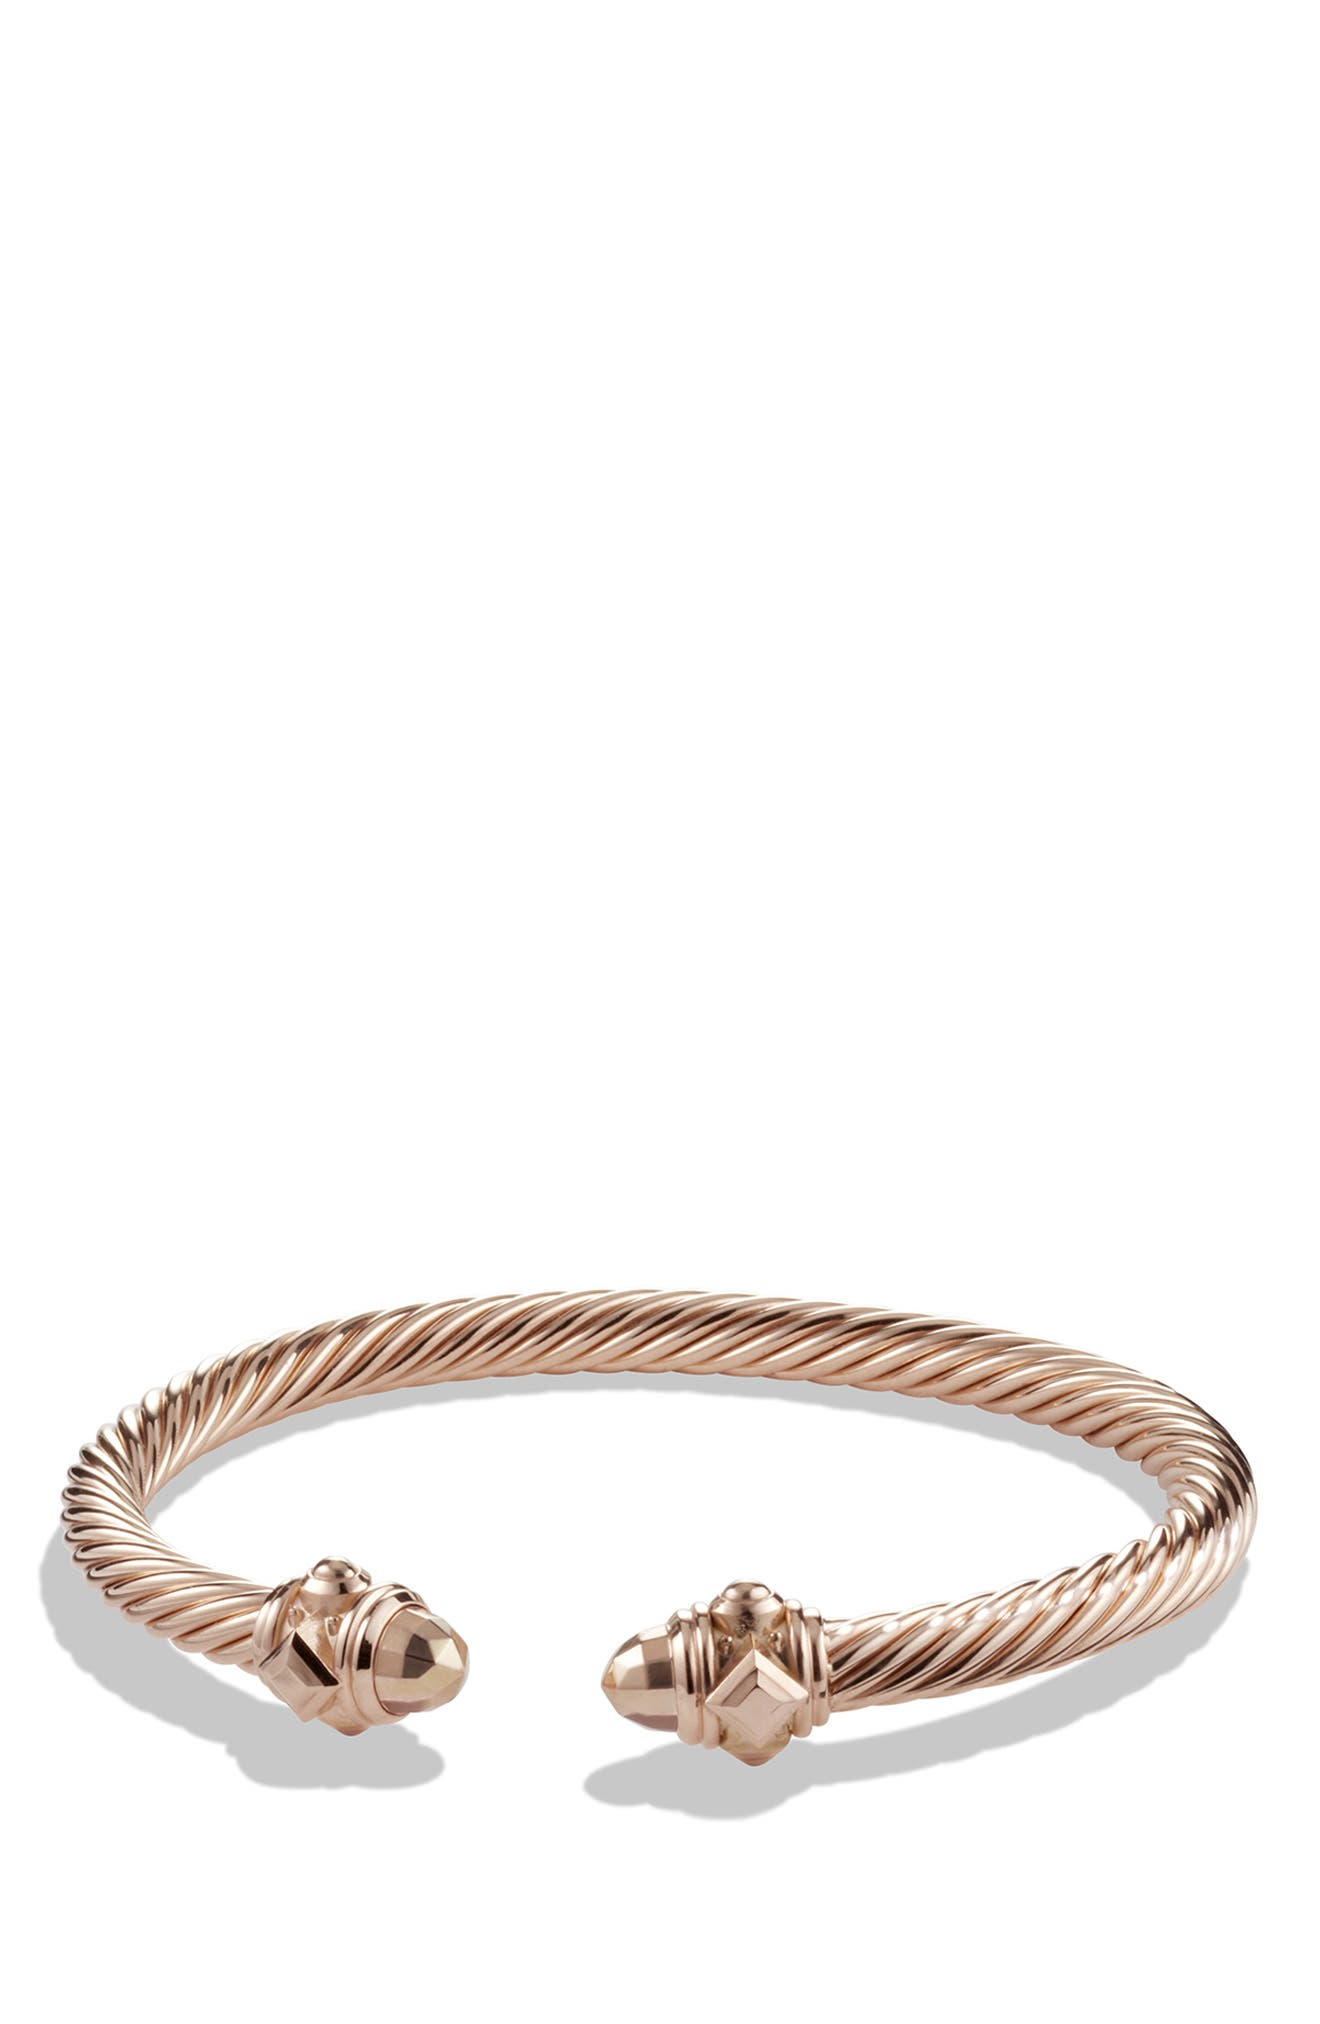 Renaissance Bracelet in 18K Rose Gold, 5mm,                             Main thumbnail 1, color,                             ROSE GOLD